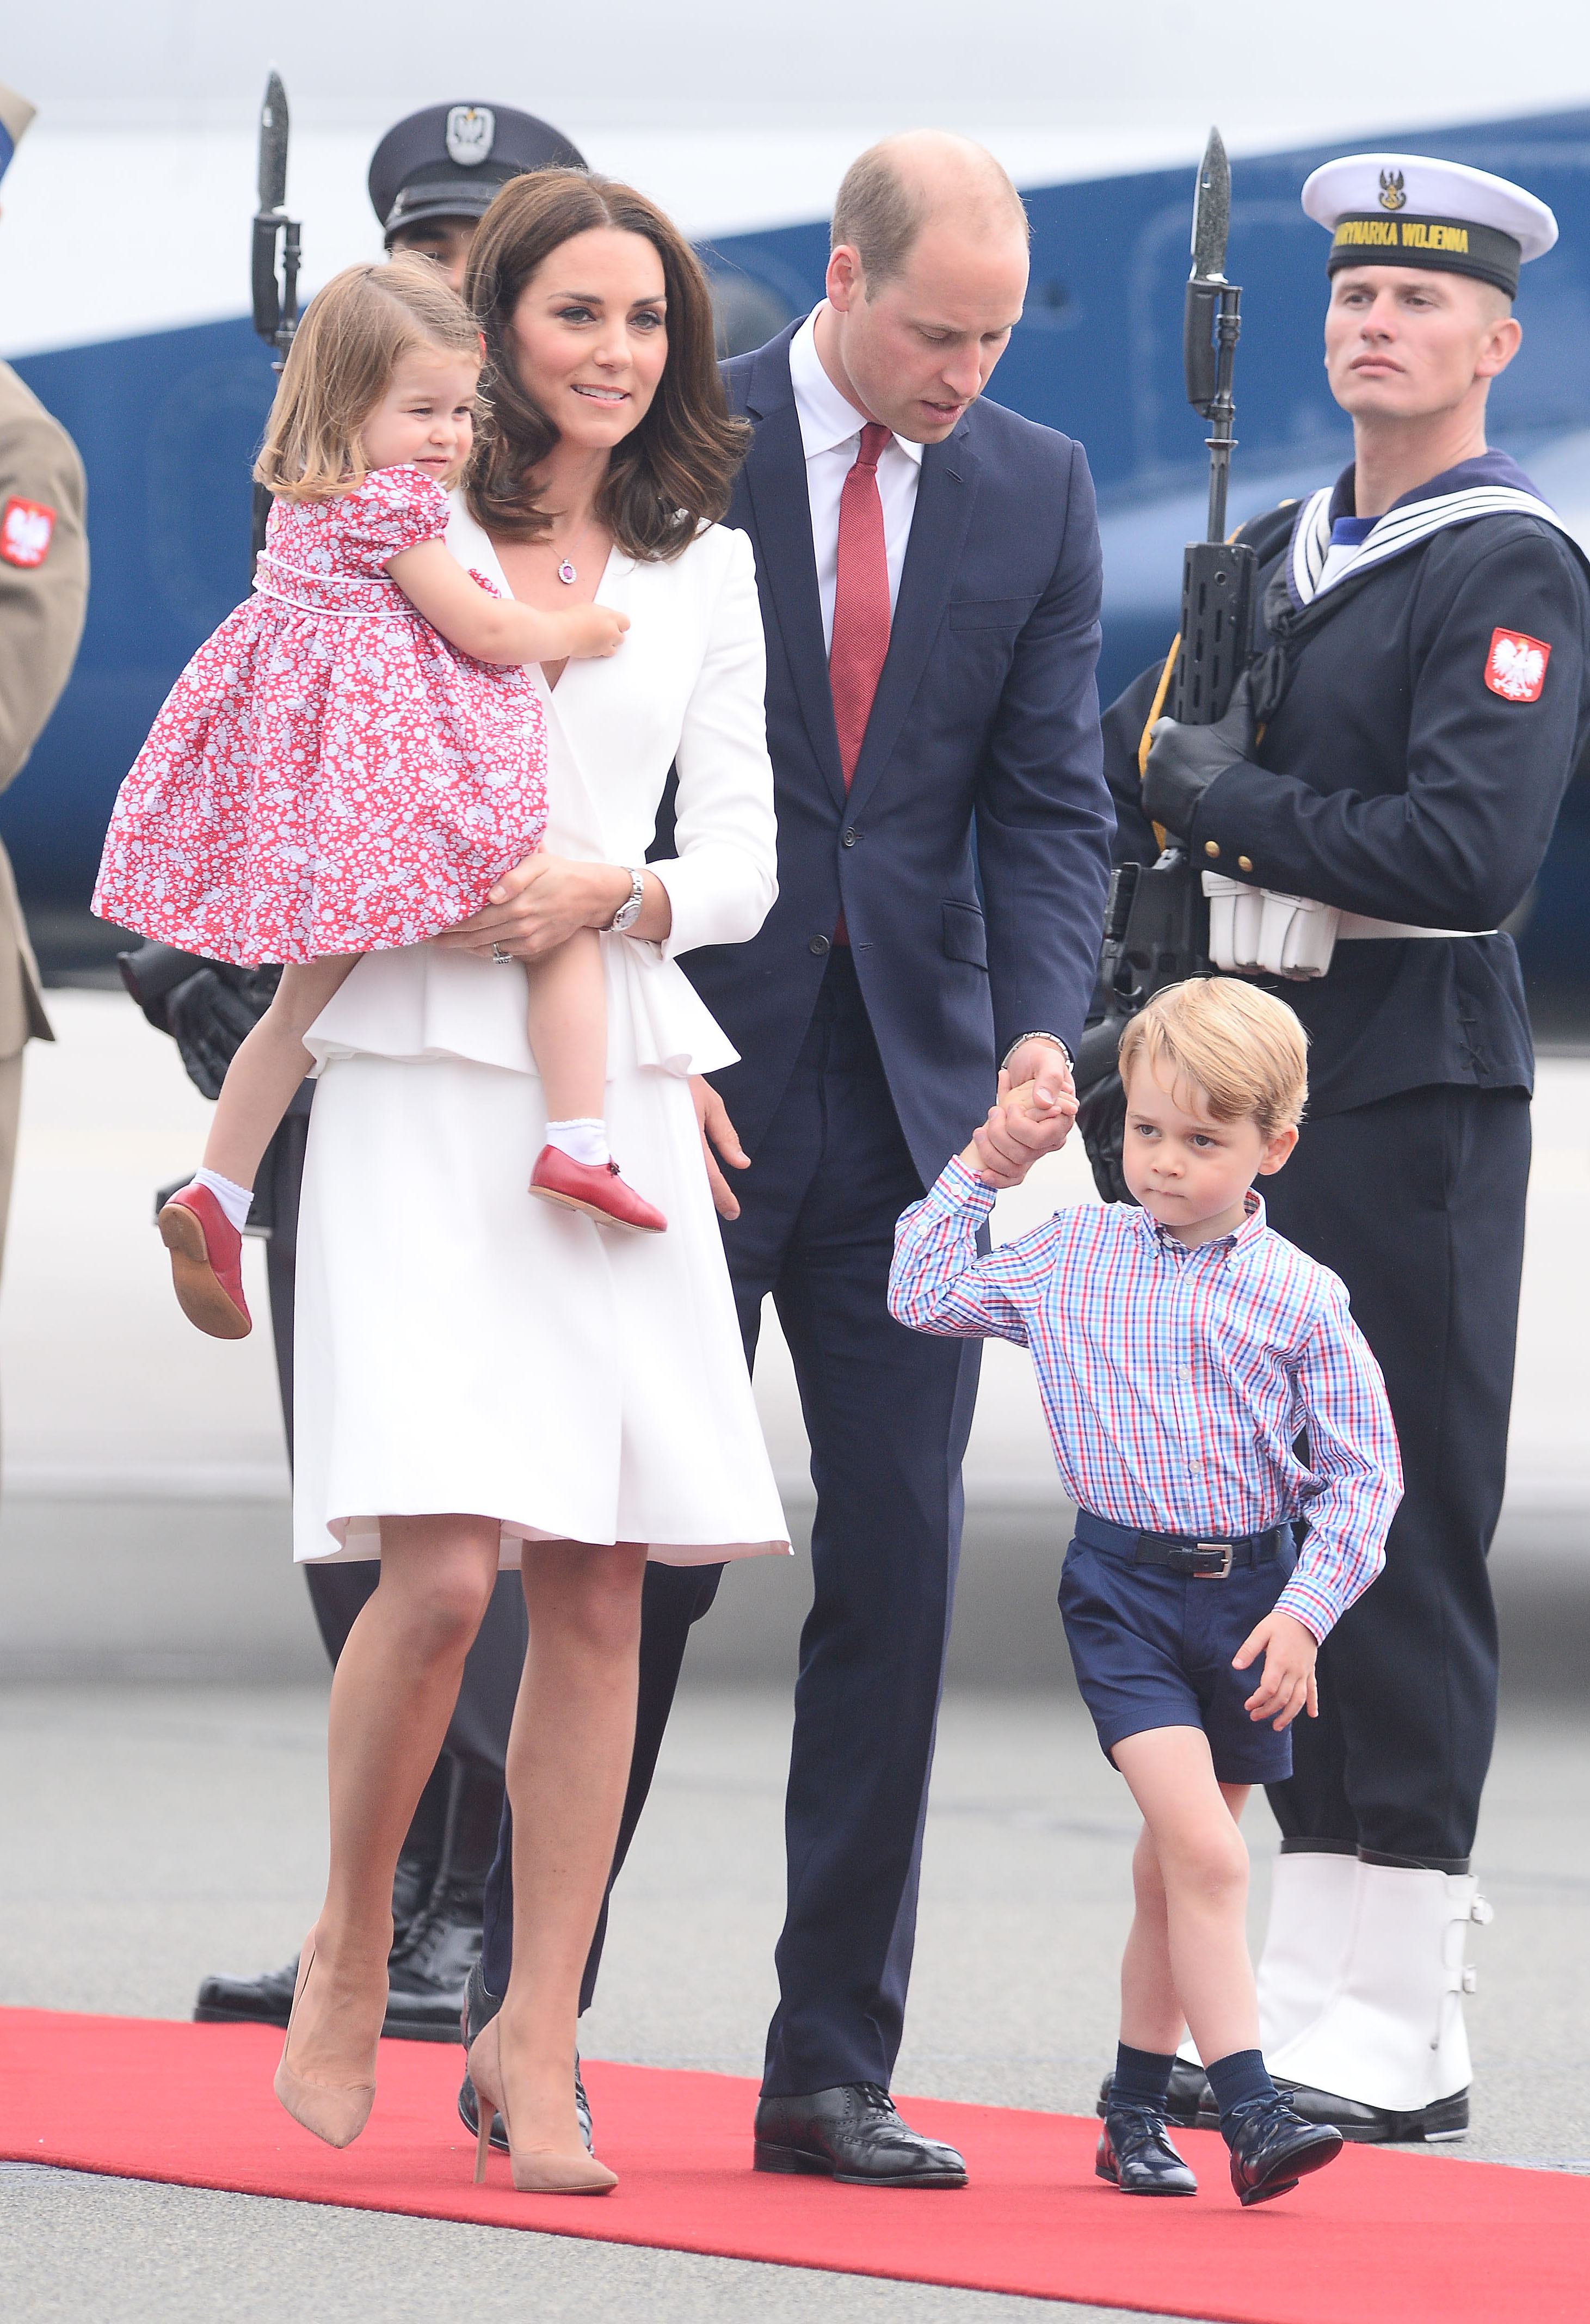 The Duchess of Cambridge (in Alexander McQueen), Princess Charlotte, Prince William and Prince George